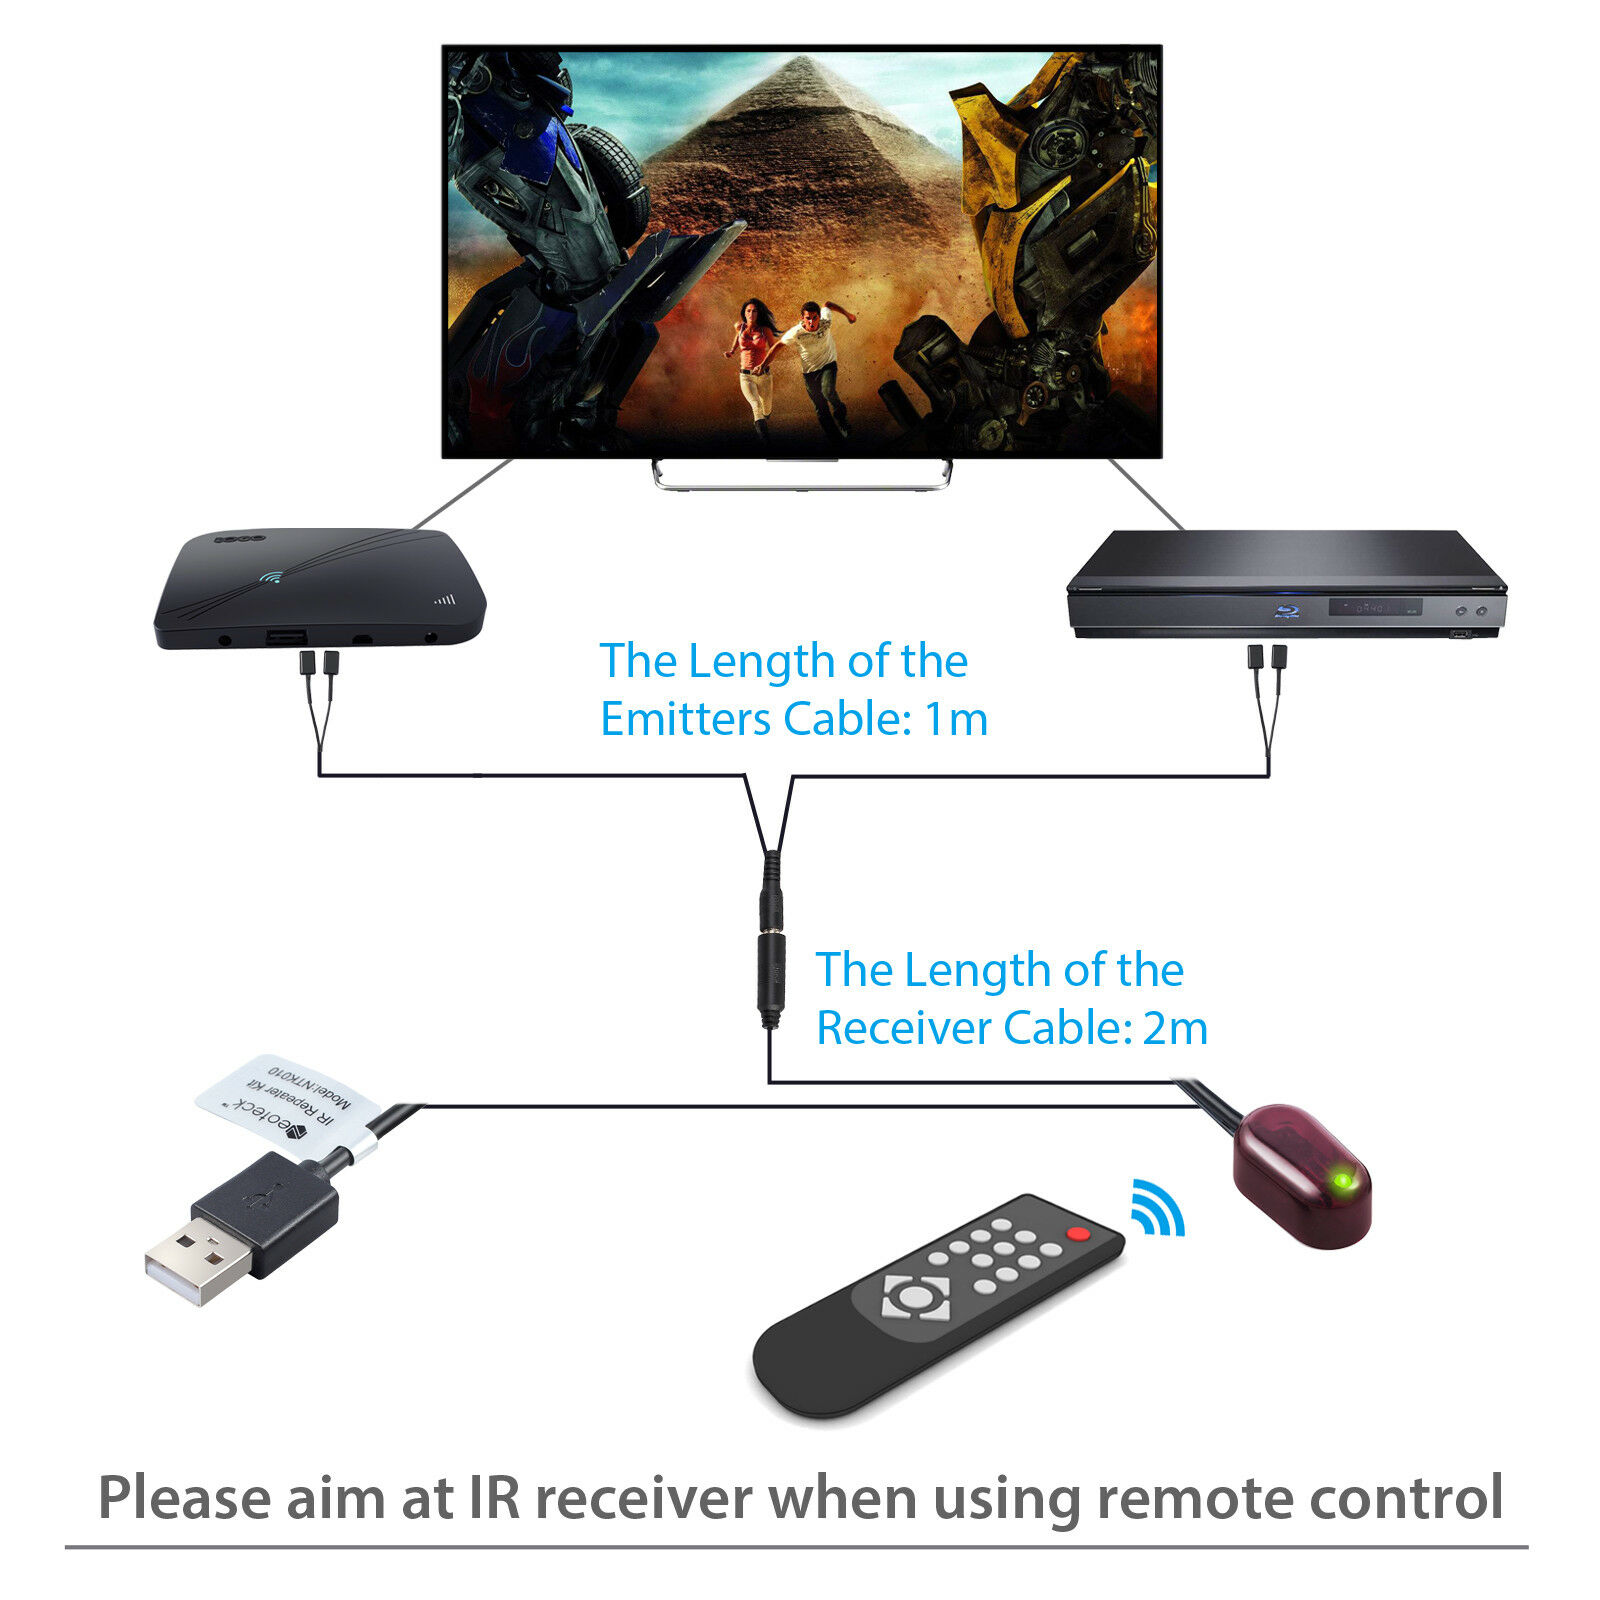 USB Adapter for Amplifier Cable Box Stereo Receiver Satellite Neoteck IR Repeater Infrared Remote 1 Receiver 4 Emitters Control Kit Hidden IR System